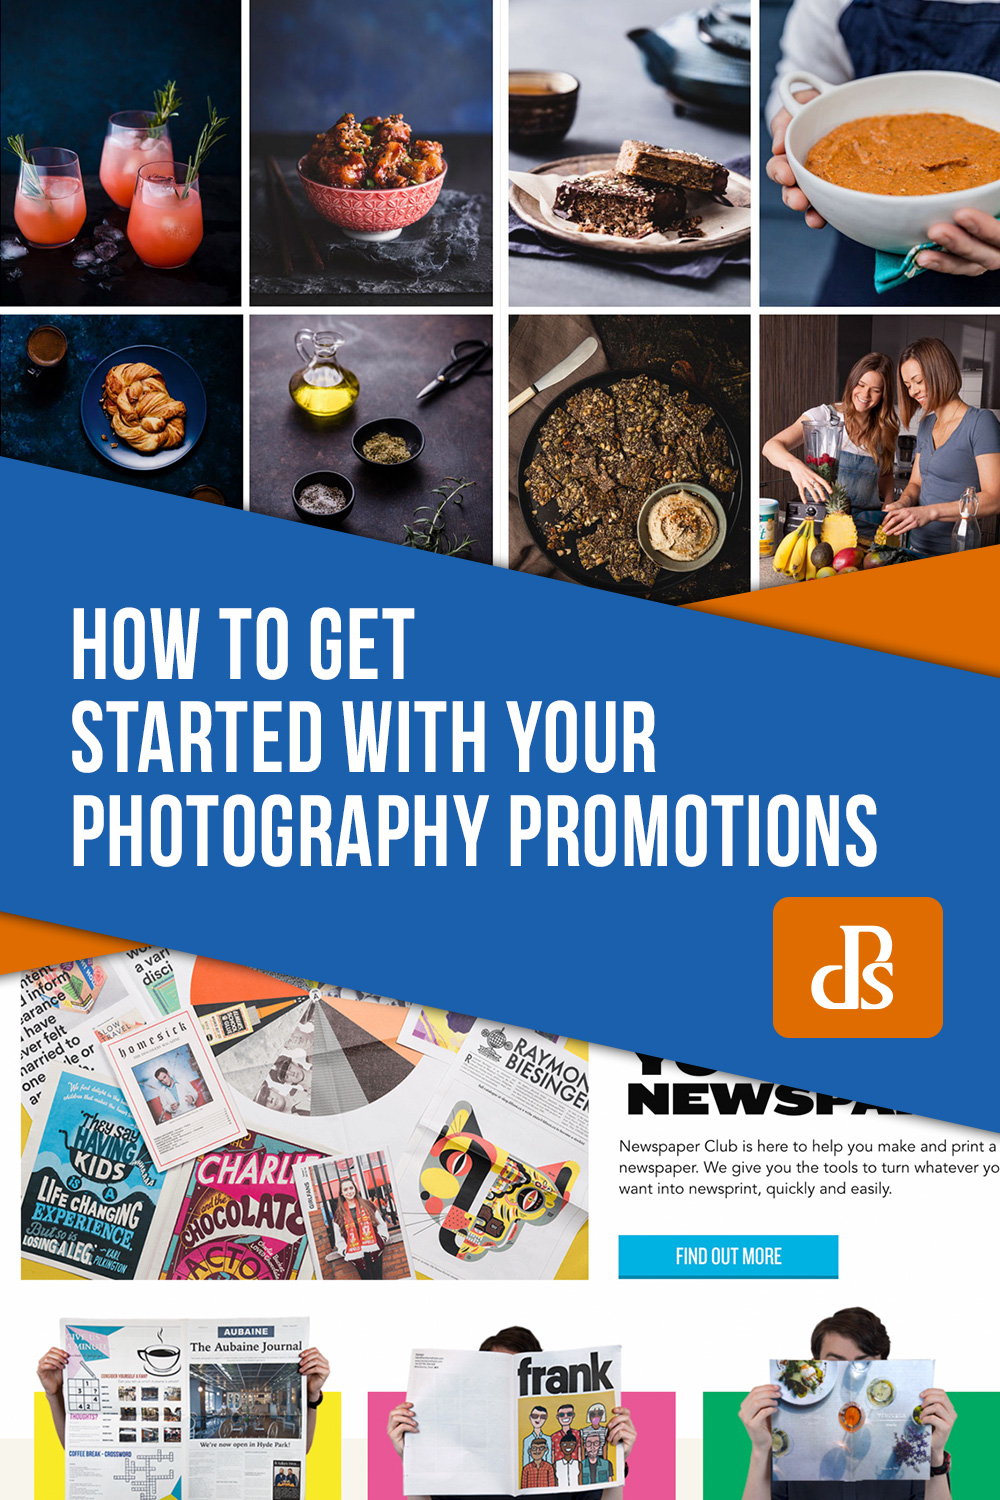 how to get started with your photography promotions